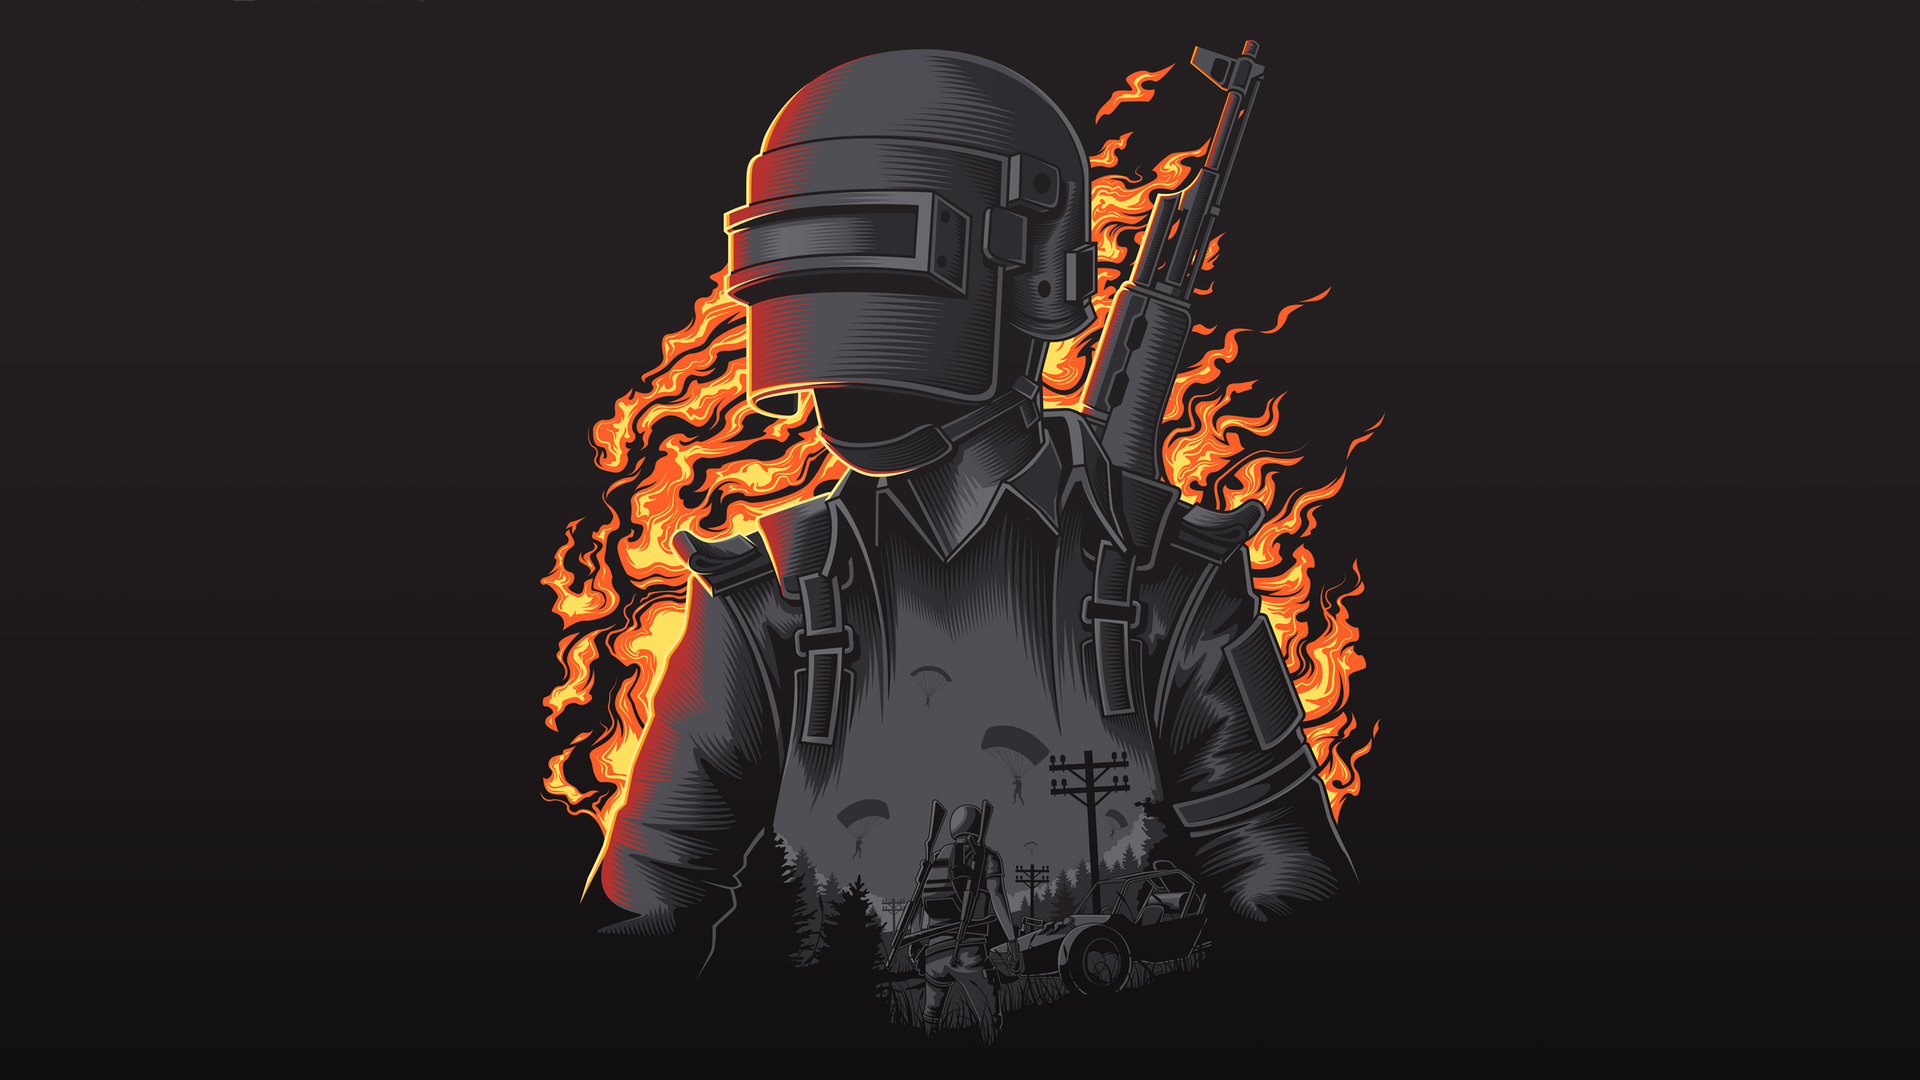 Pubg Wallpapers Hd 1080p: 1920x1080 Pubg Illustration 4k Laptop Full HD 1080P HD 4k